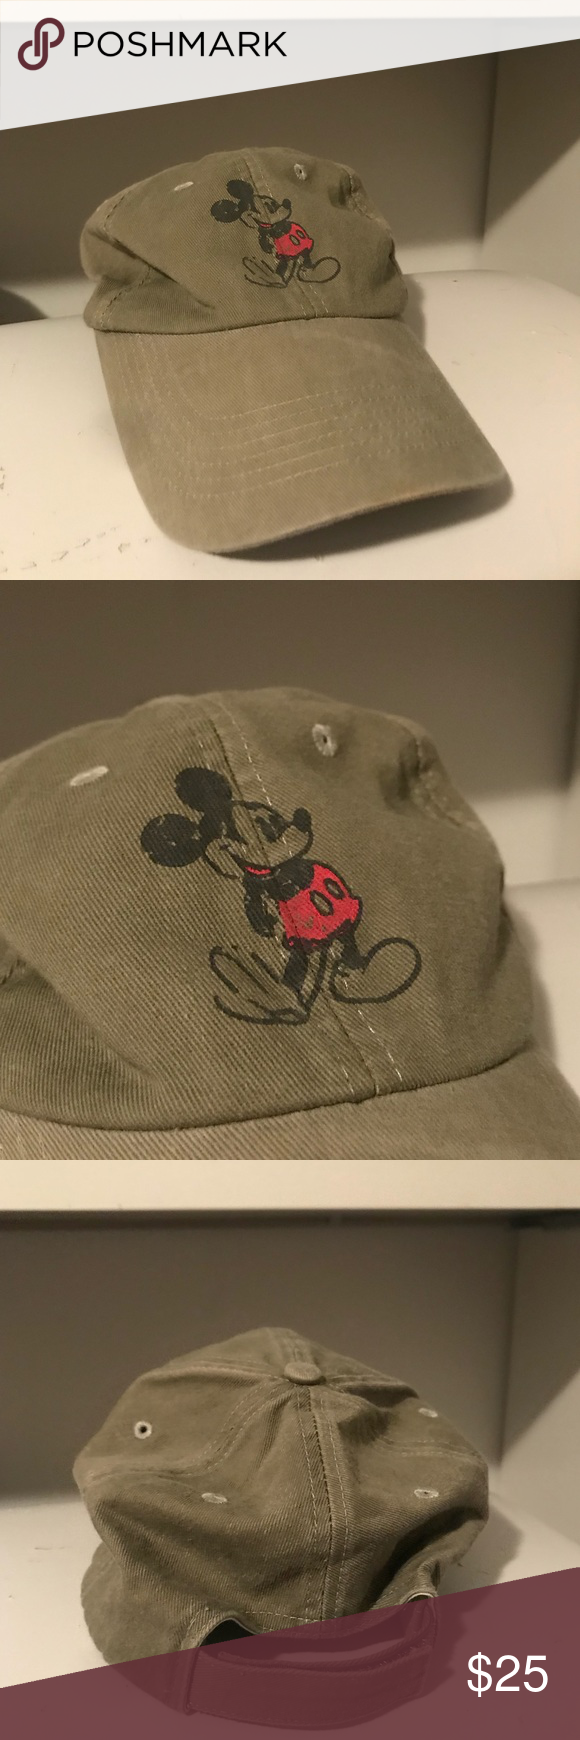 a84ad119970 VINTAGE Green Mickey Mouse Hat This is a VINTAGE green colored Mickey Mouse  hat from Disney